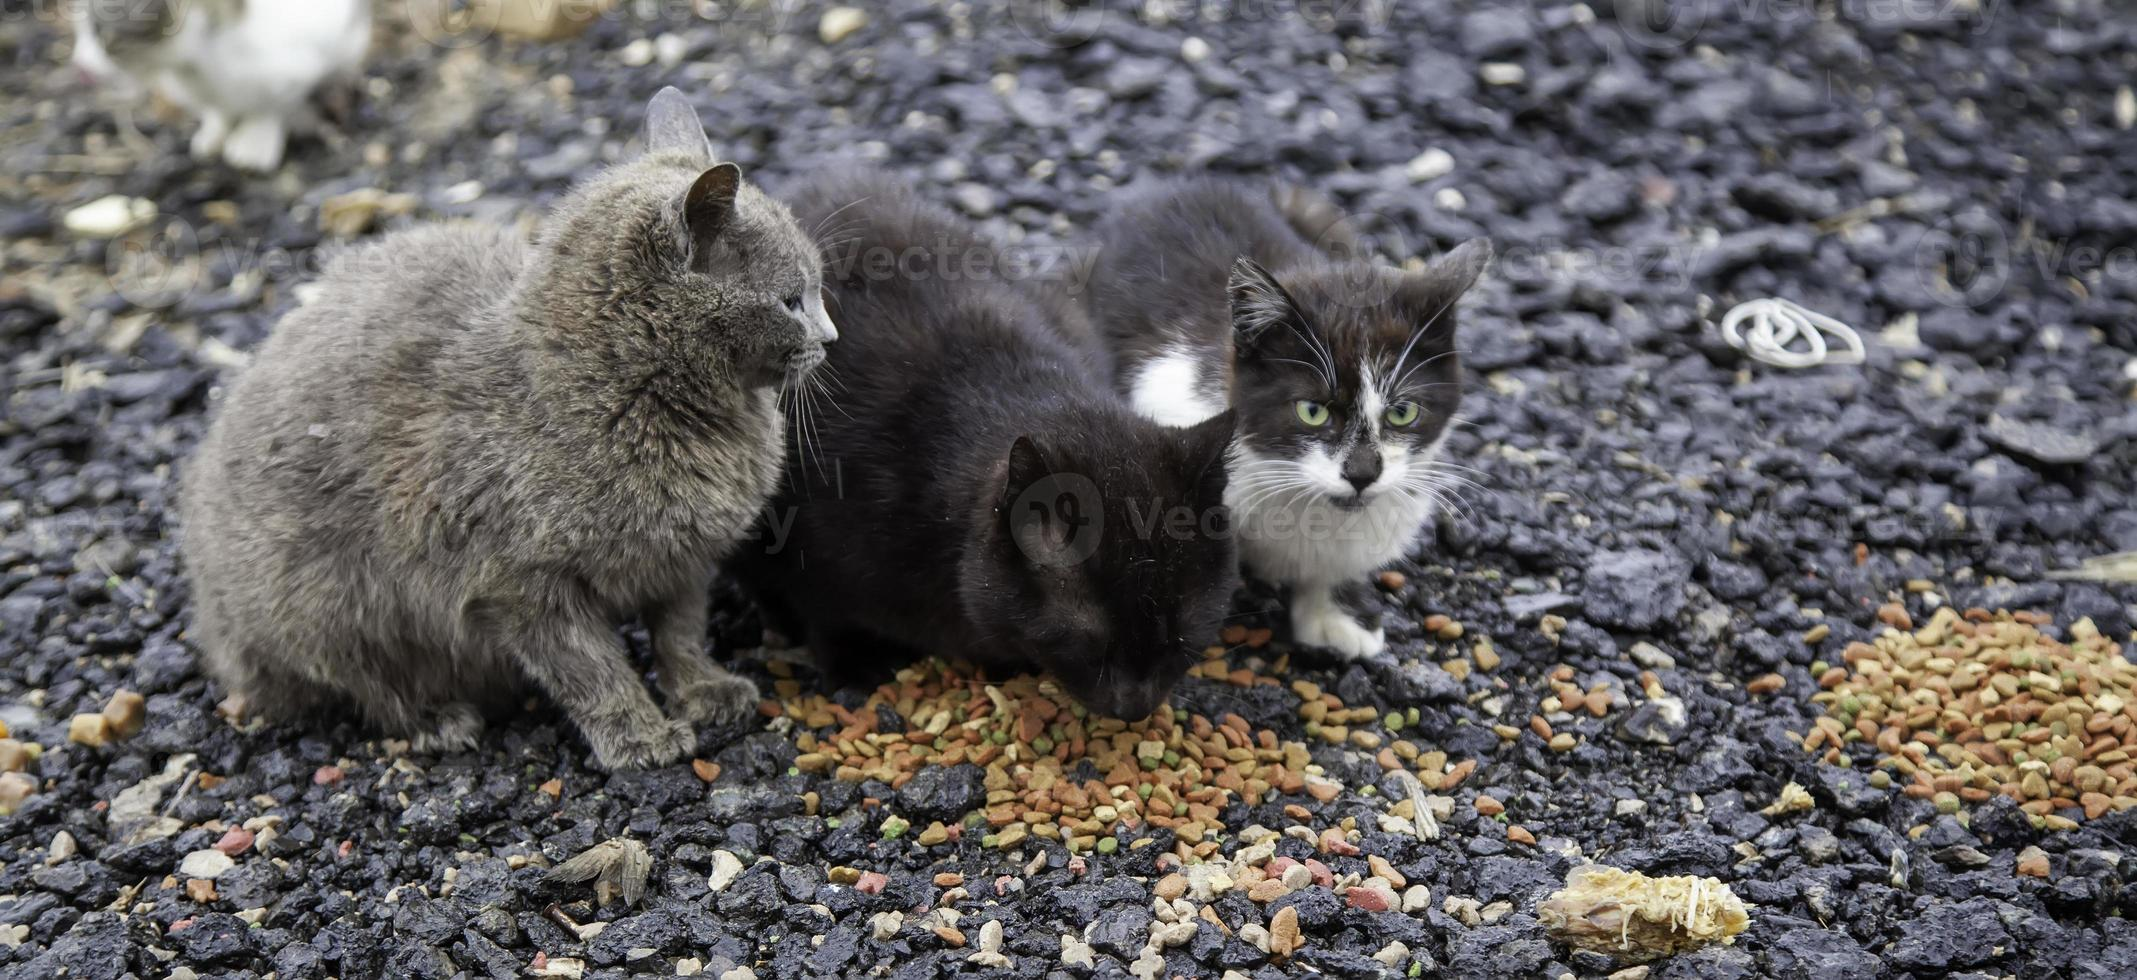 Cats eating in the street photo